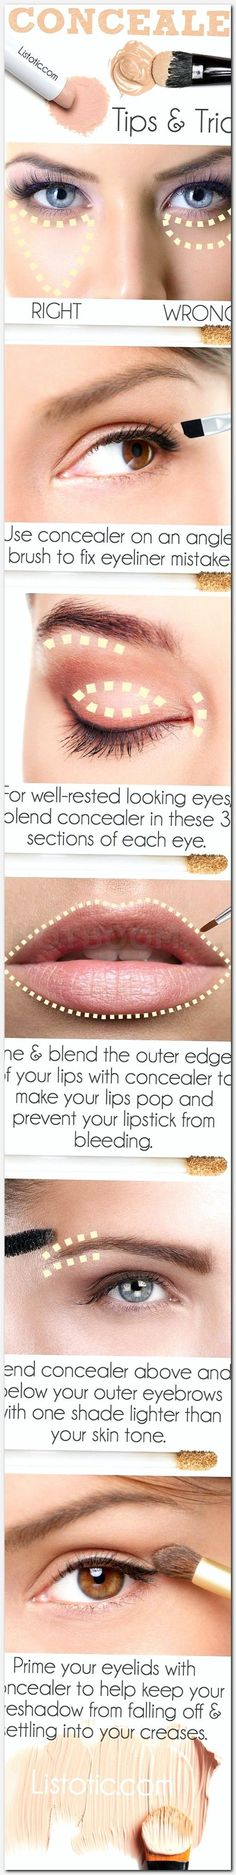 beauty recommendations, how can i make it up to you, korean simple make up, cosmetics name list, to make up meaning, how to apply everyday eye makeup, blush store hours, put makeup on photo, when we make up, black women eyeshadow, hair and makeup for bride, online rotary makeup, home made beauty tips, how to makeup professionally, lips make up, different eye makeup looks